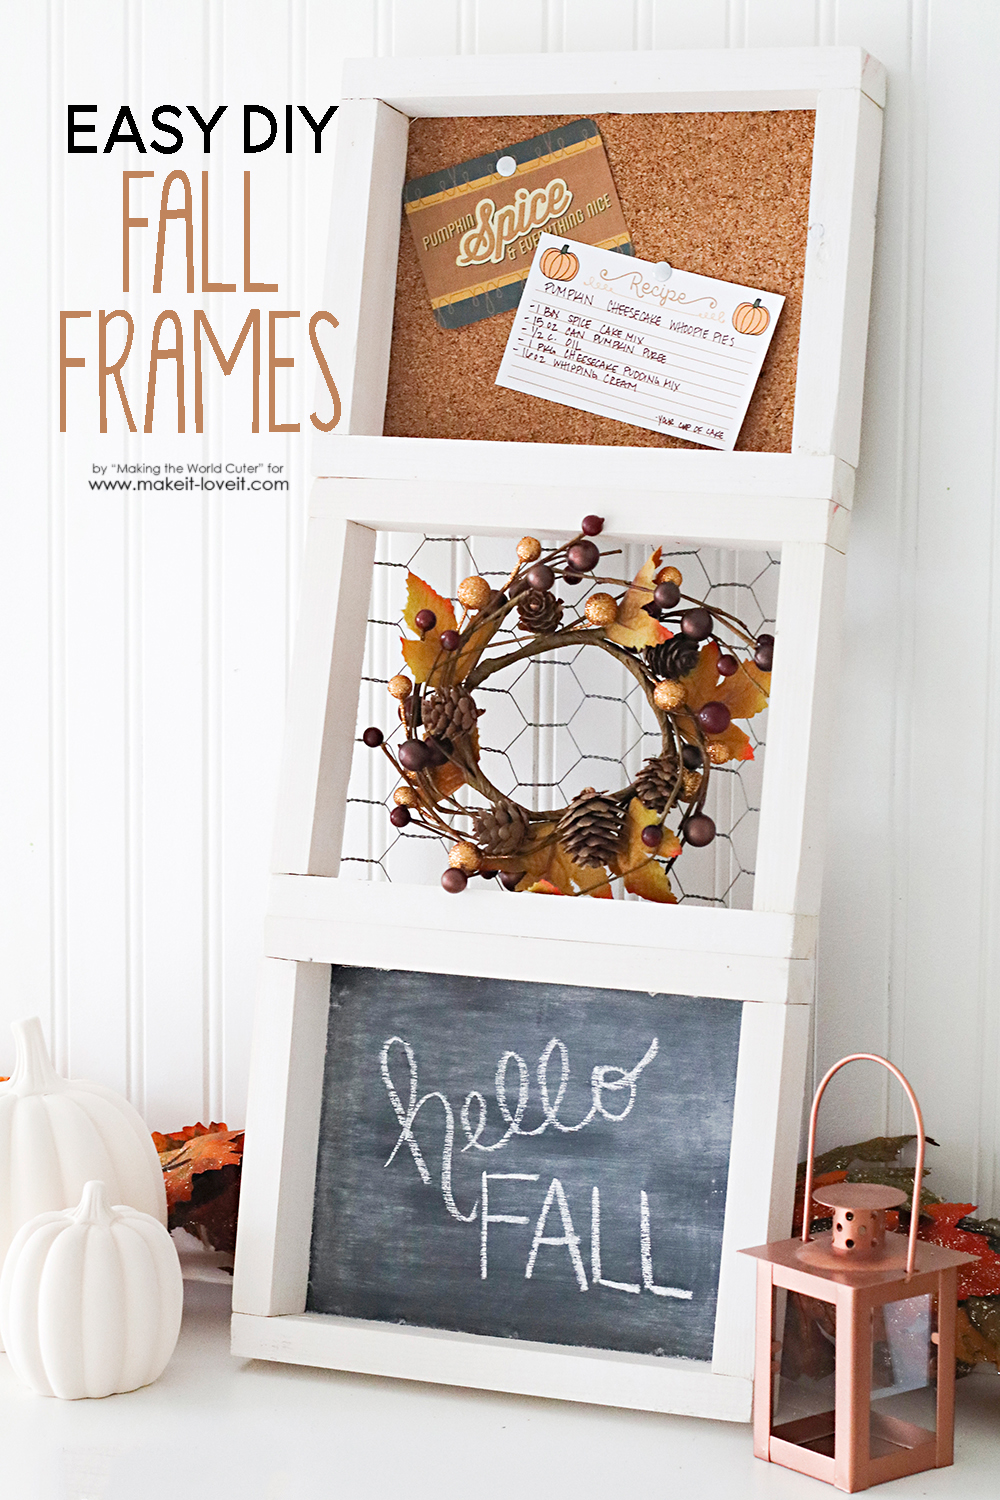 Easy diy fall frames